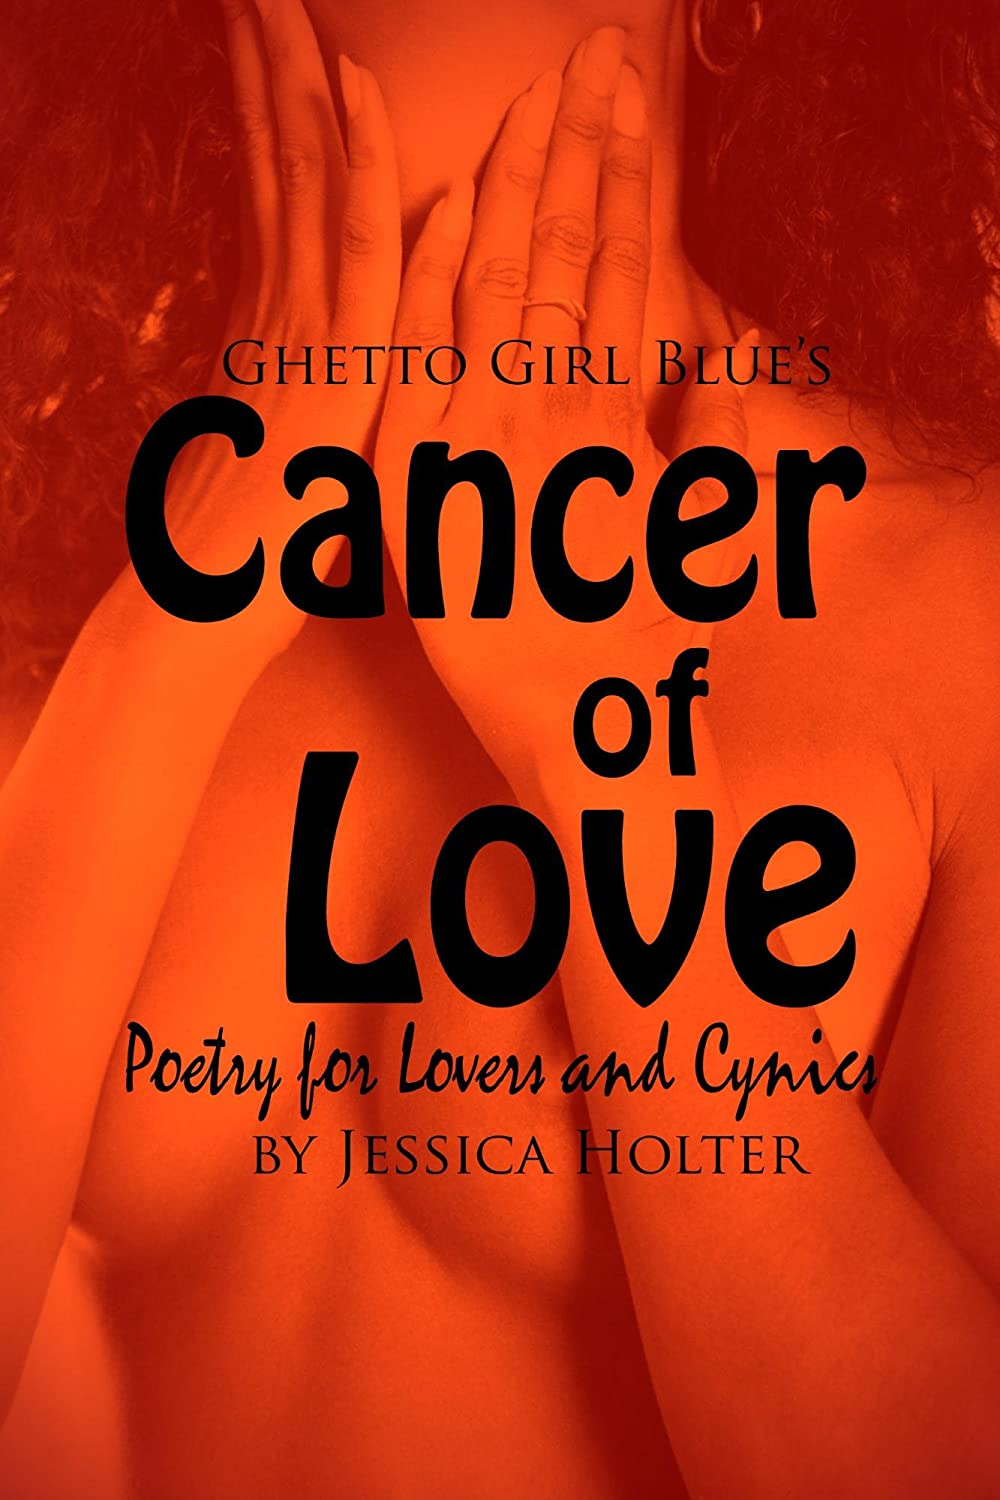 Cancer of Love by Jessica Holter